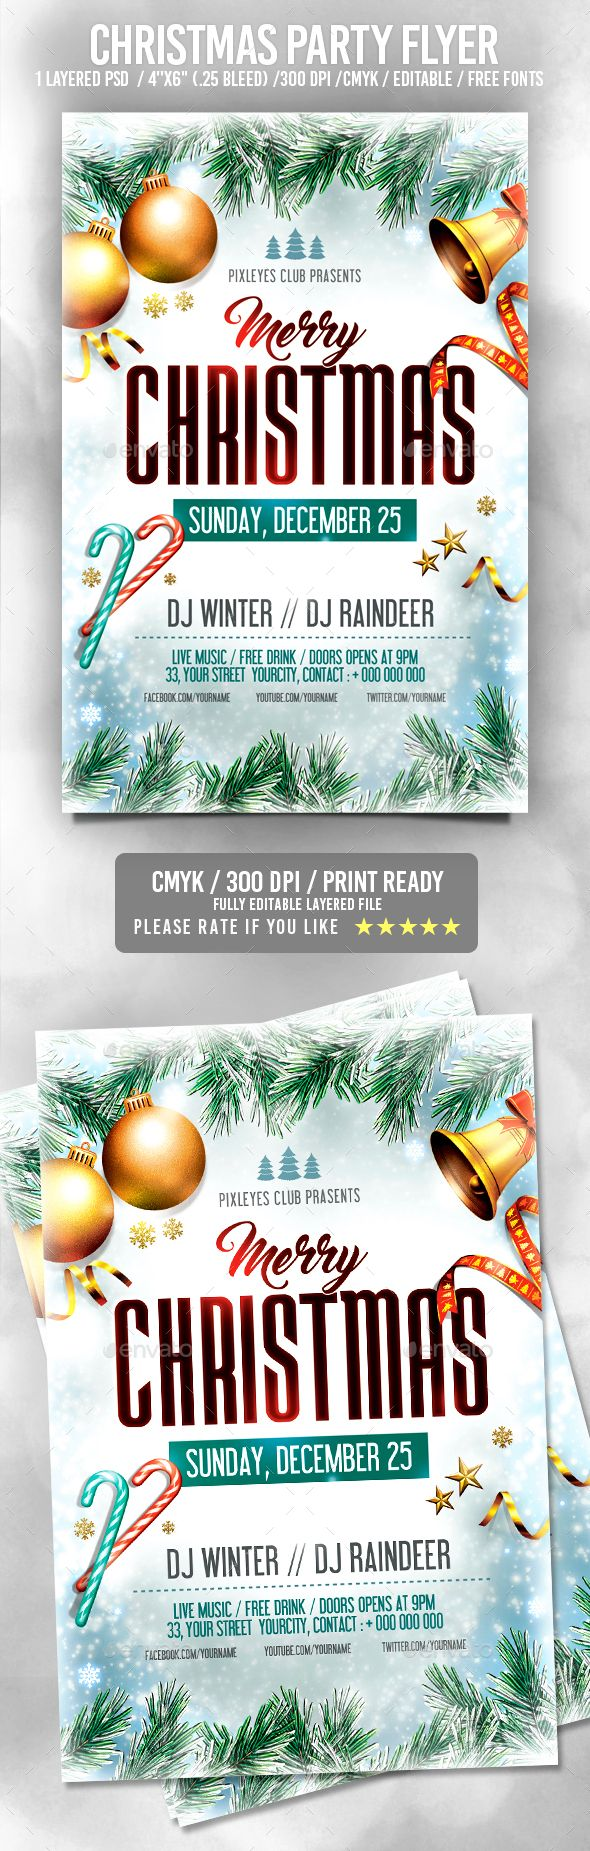 Christmas Flyer — Photoshop PSD #christmas invitation #vintage christmas • Available here → https://graphicriver.net/item/christmas-flyer/18864643?ref=pxcr